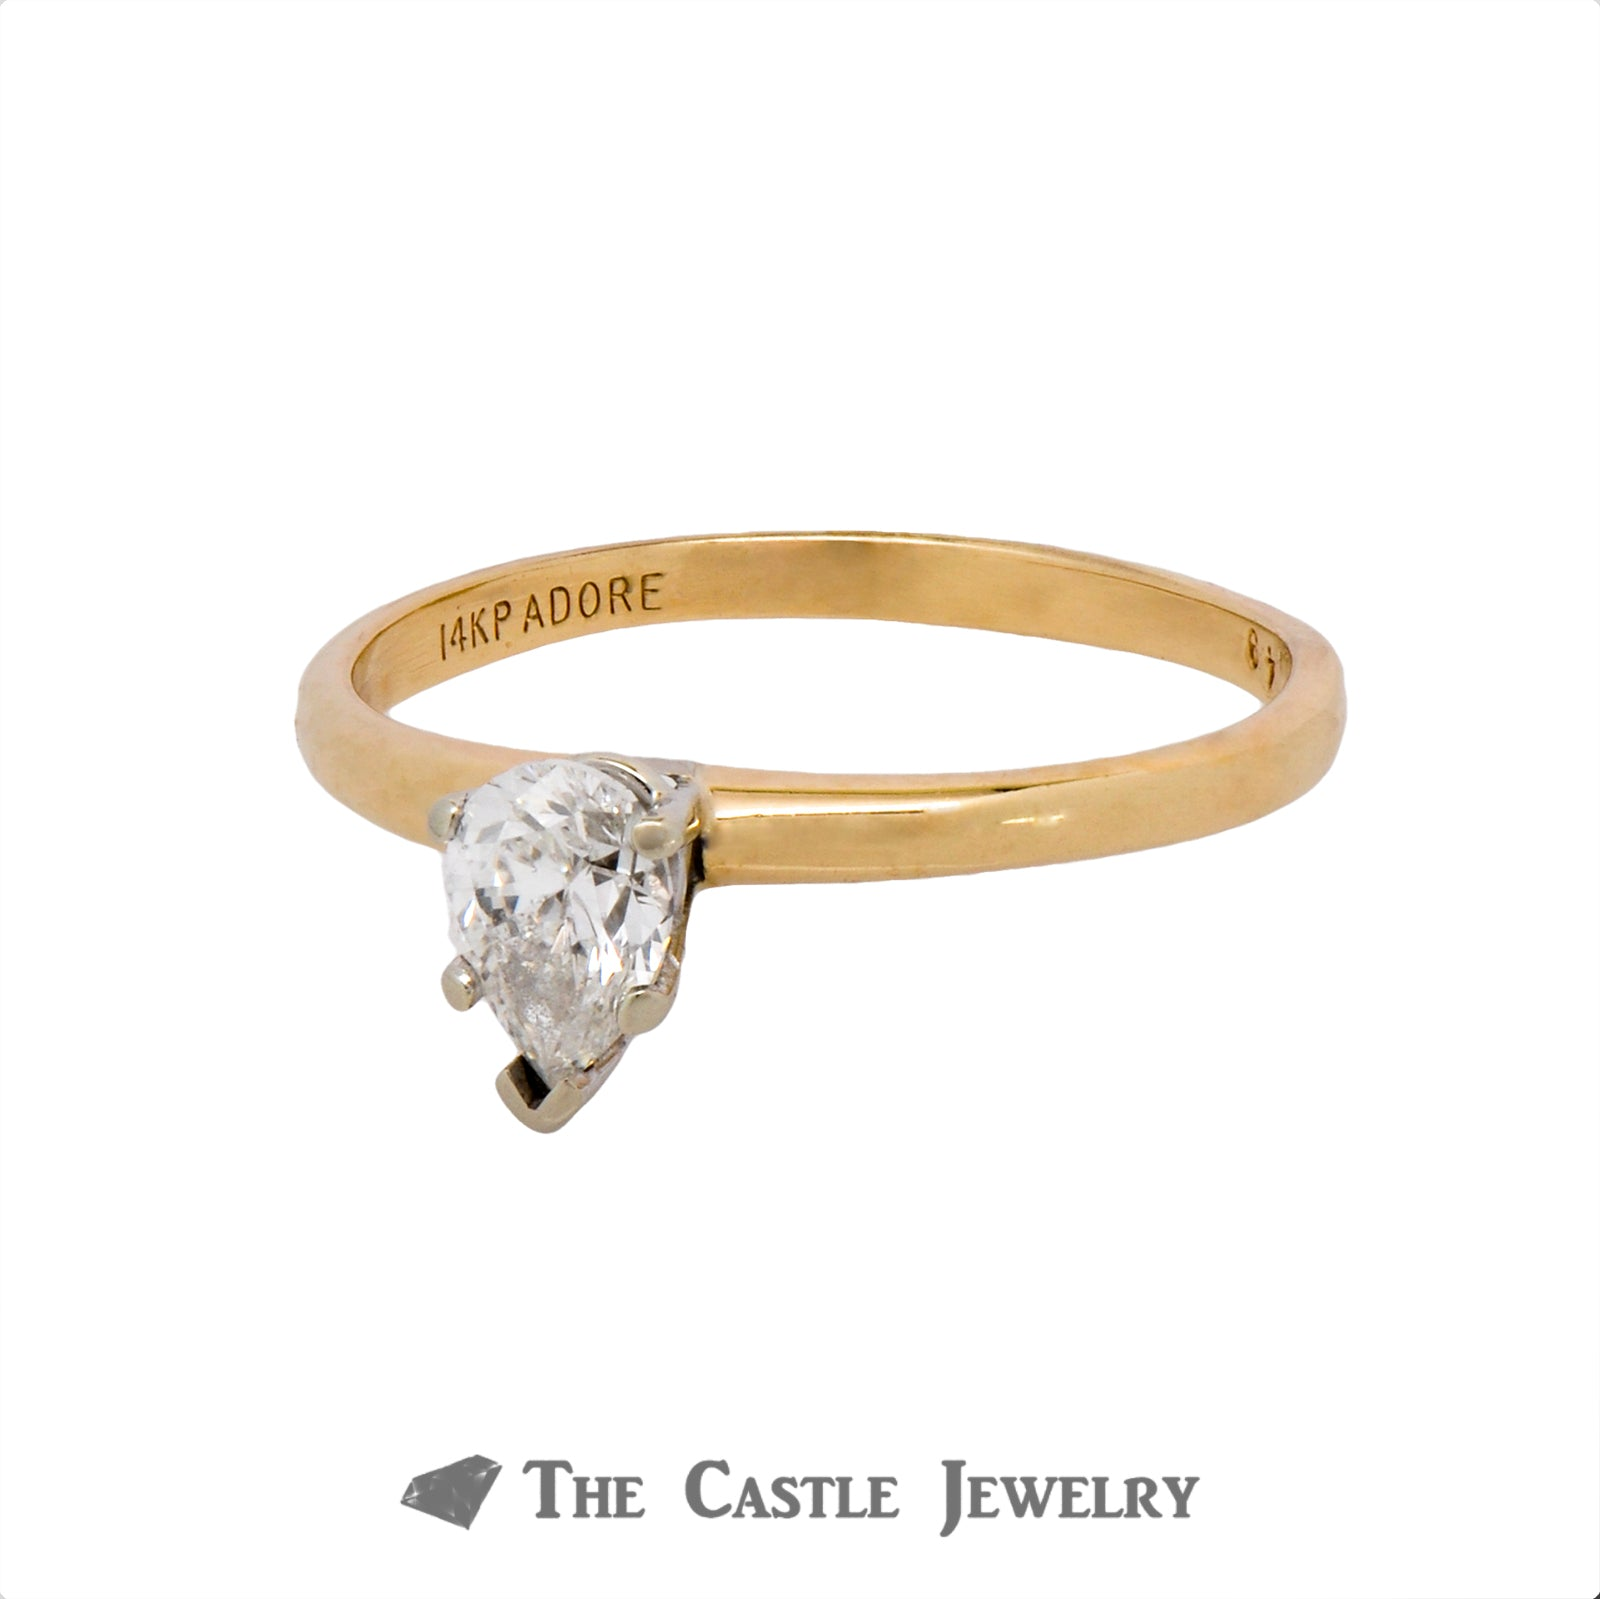 Lovely .49ct Pear Shaped Solitaire Diamond Engagement Ring Crafted in 14K Yellow Gold-2